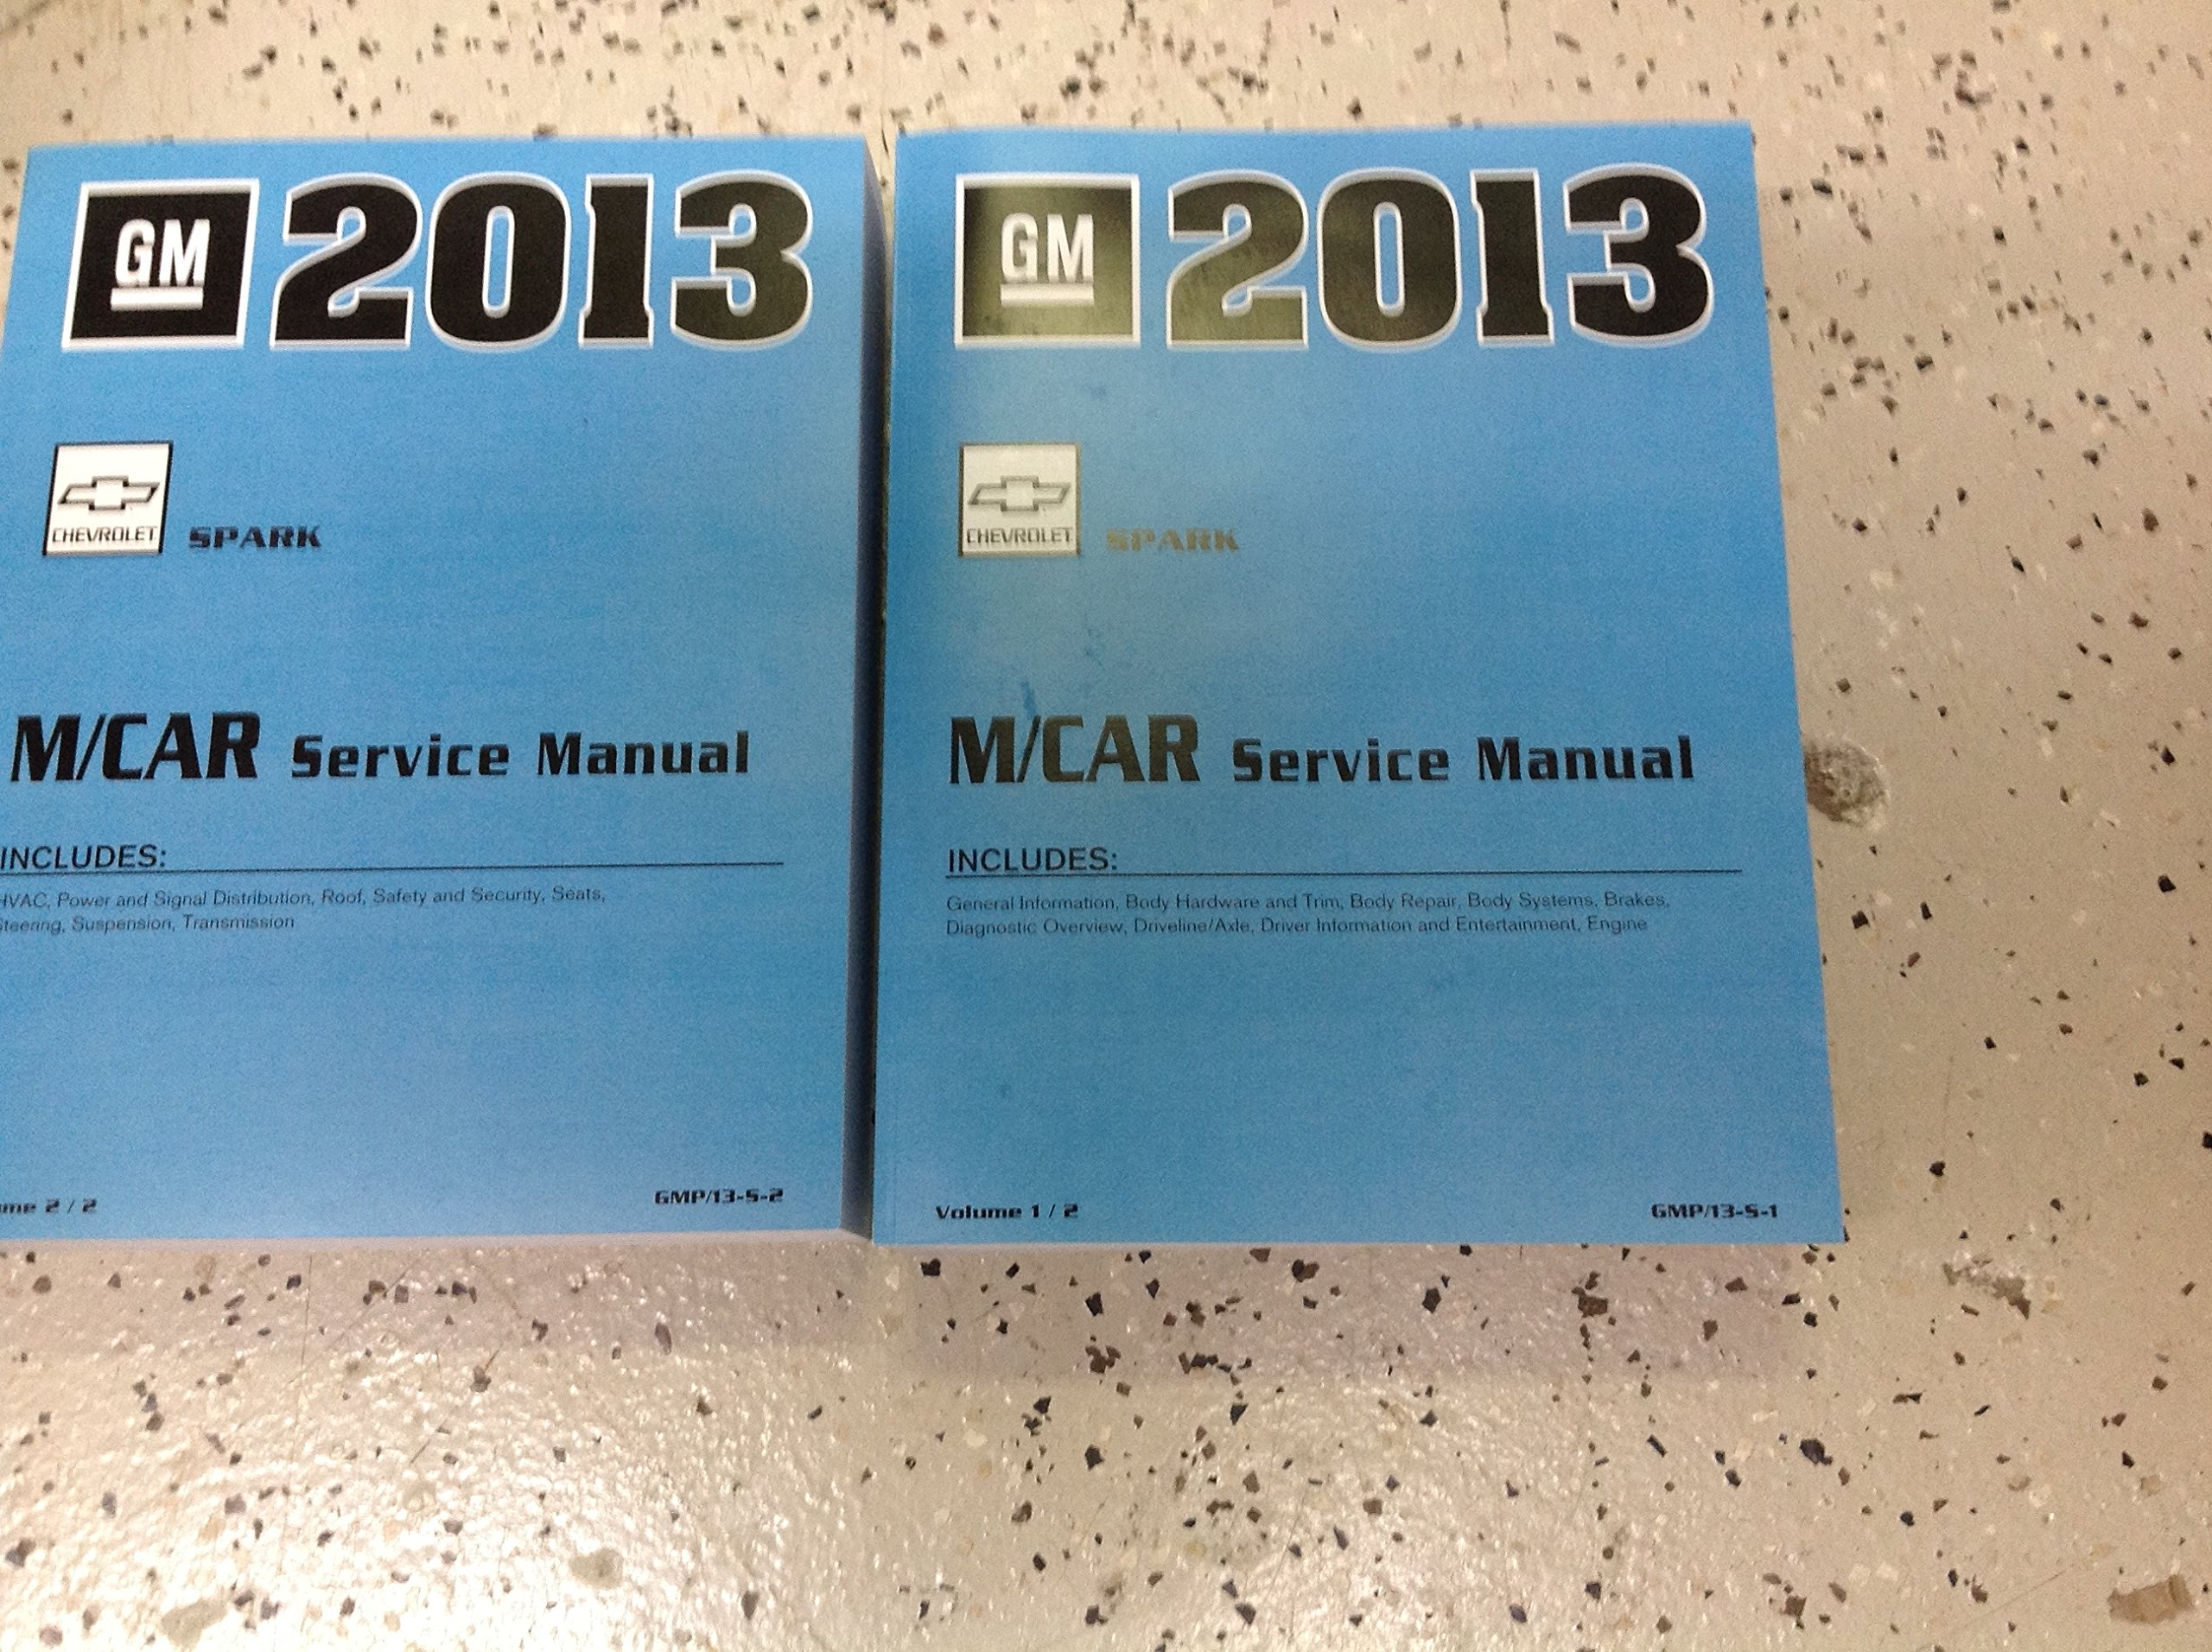 2013 chevy chevrolet spark service shop repair manual set new oem rh amazon com chevrolet spark owners manual 2013 Car Owners Manual